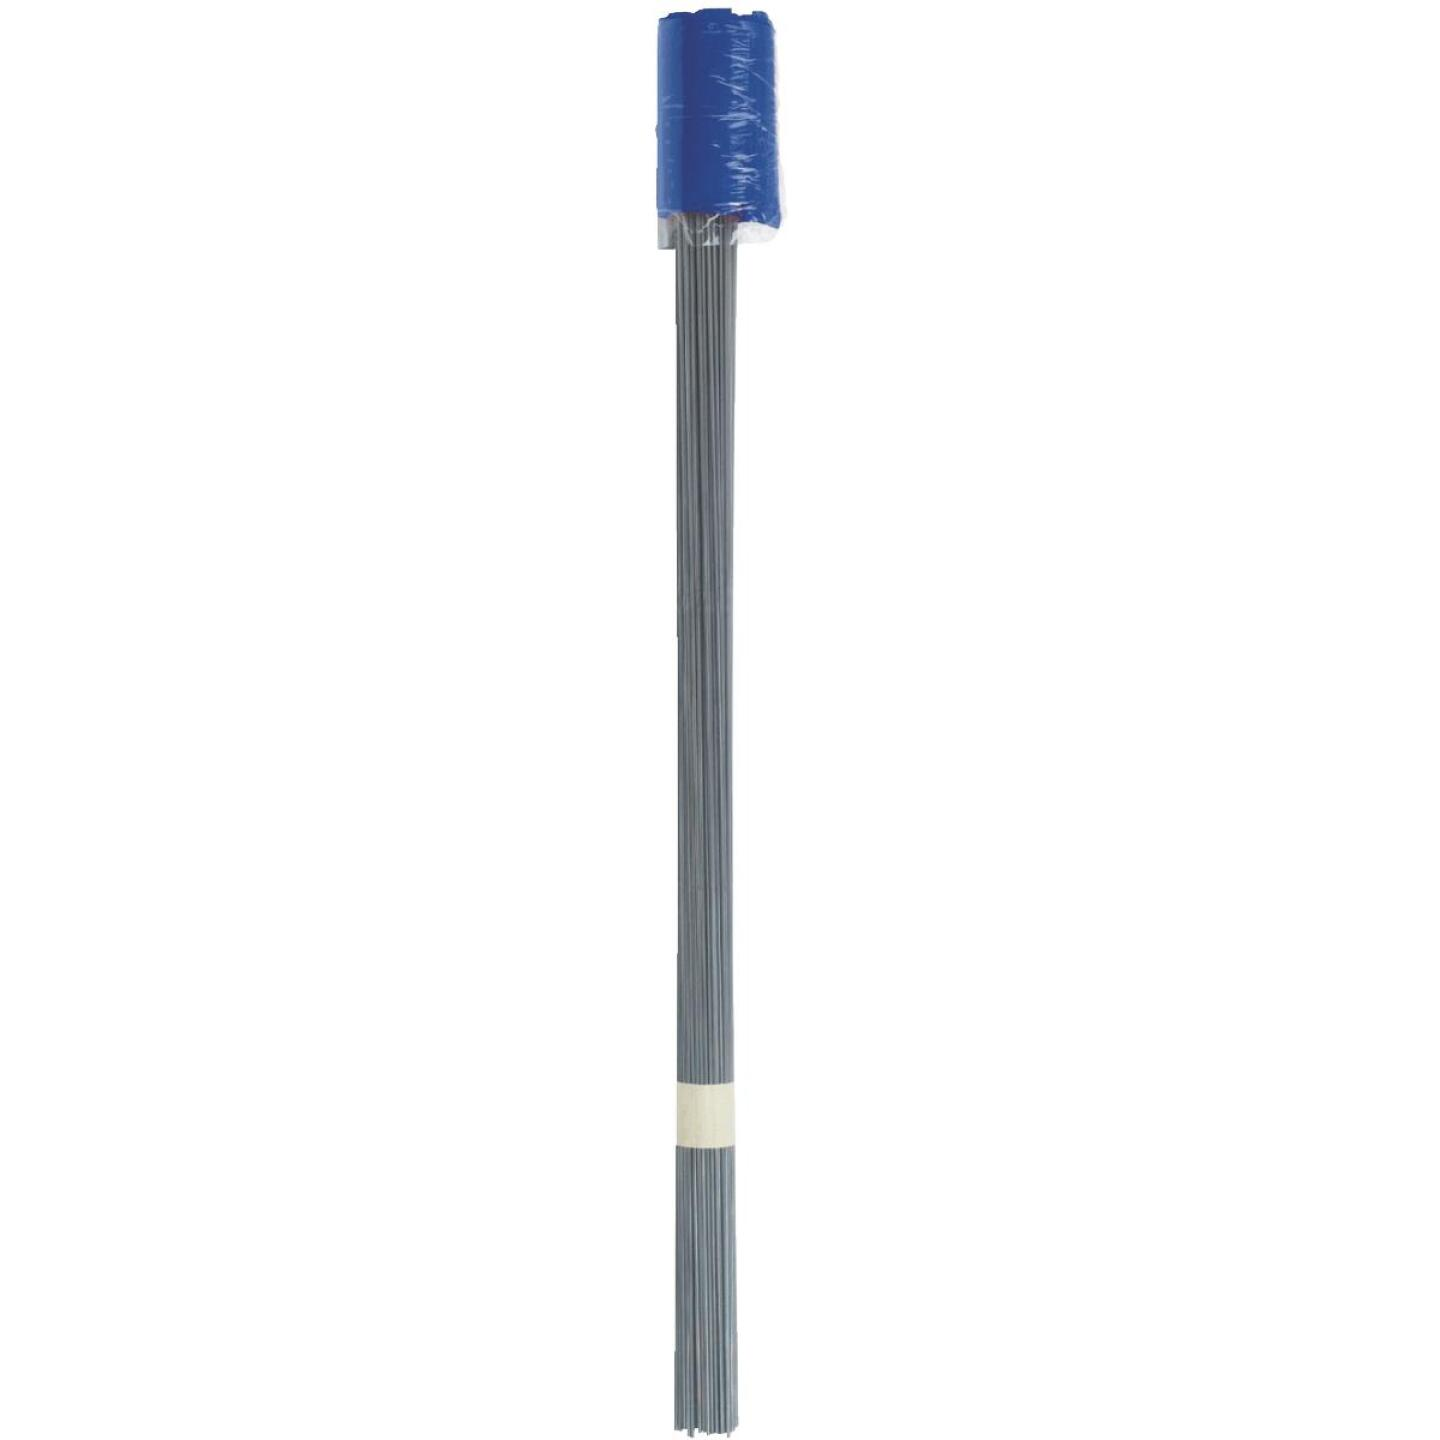 Empire 21 In. Steel Staff Blue Marking Flags Image 2